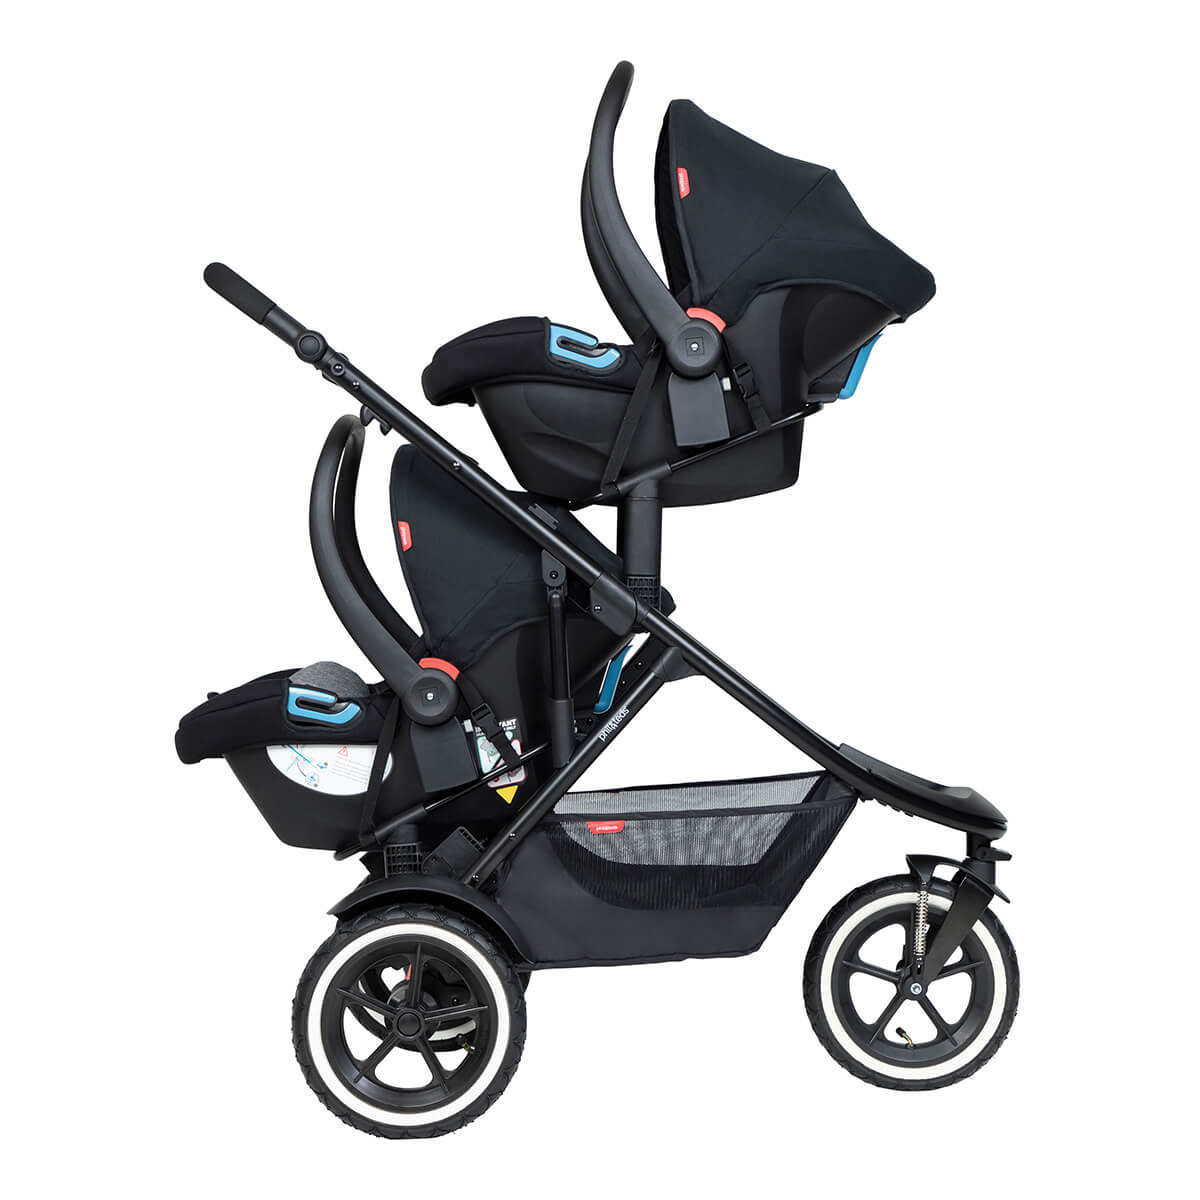 https://cdn.accentuate.io/4417276117026/19437754220722/philteds-sport-buggy-with-double-alpha-travel-system-v1626482706730.jpg?1200x1200